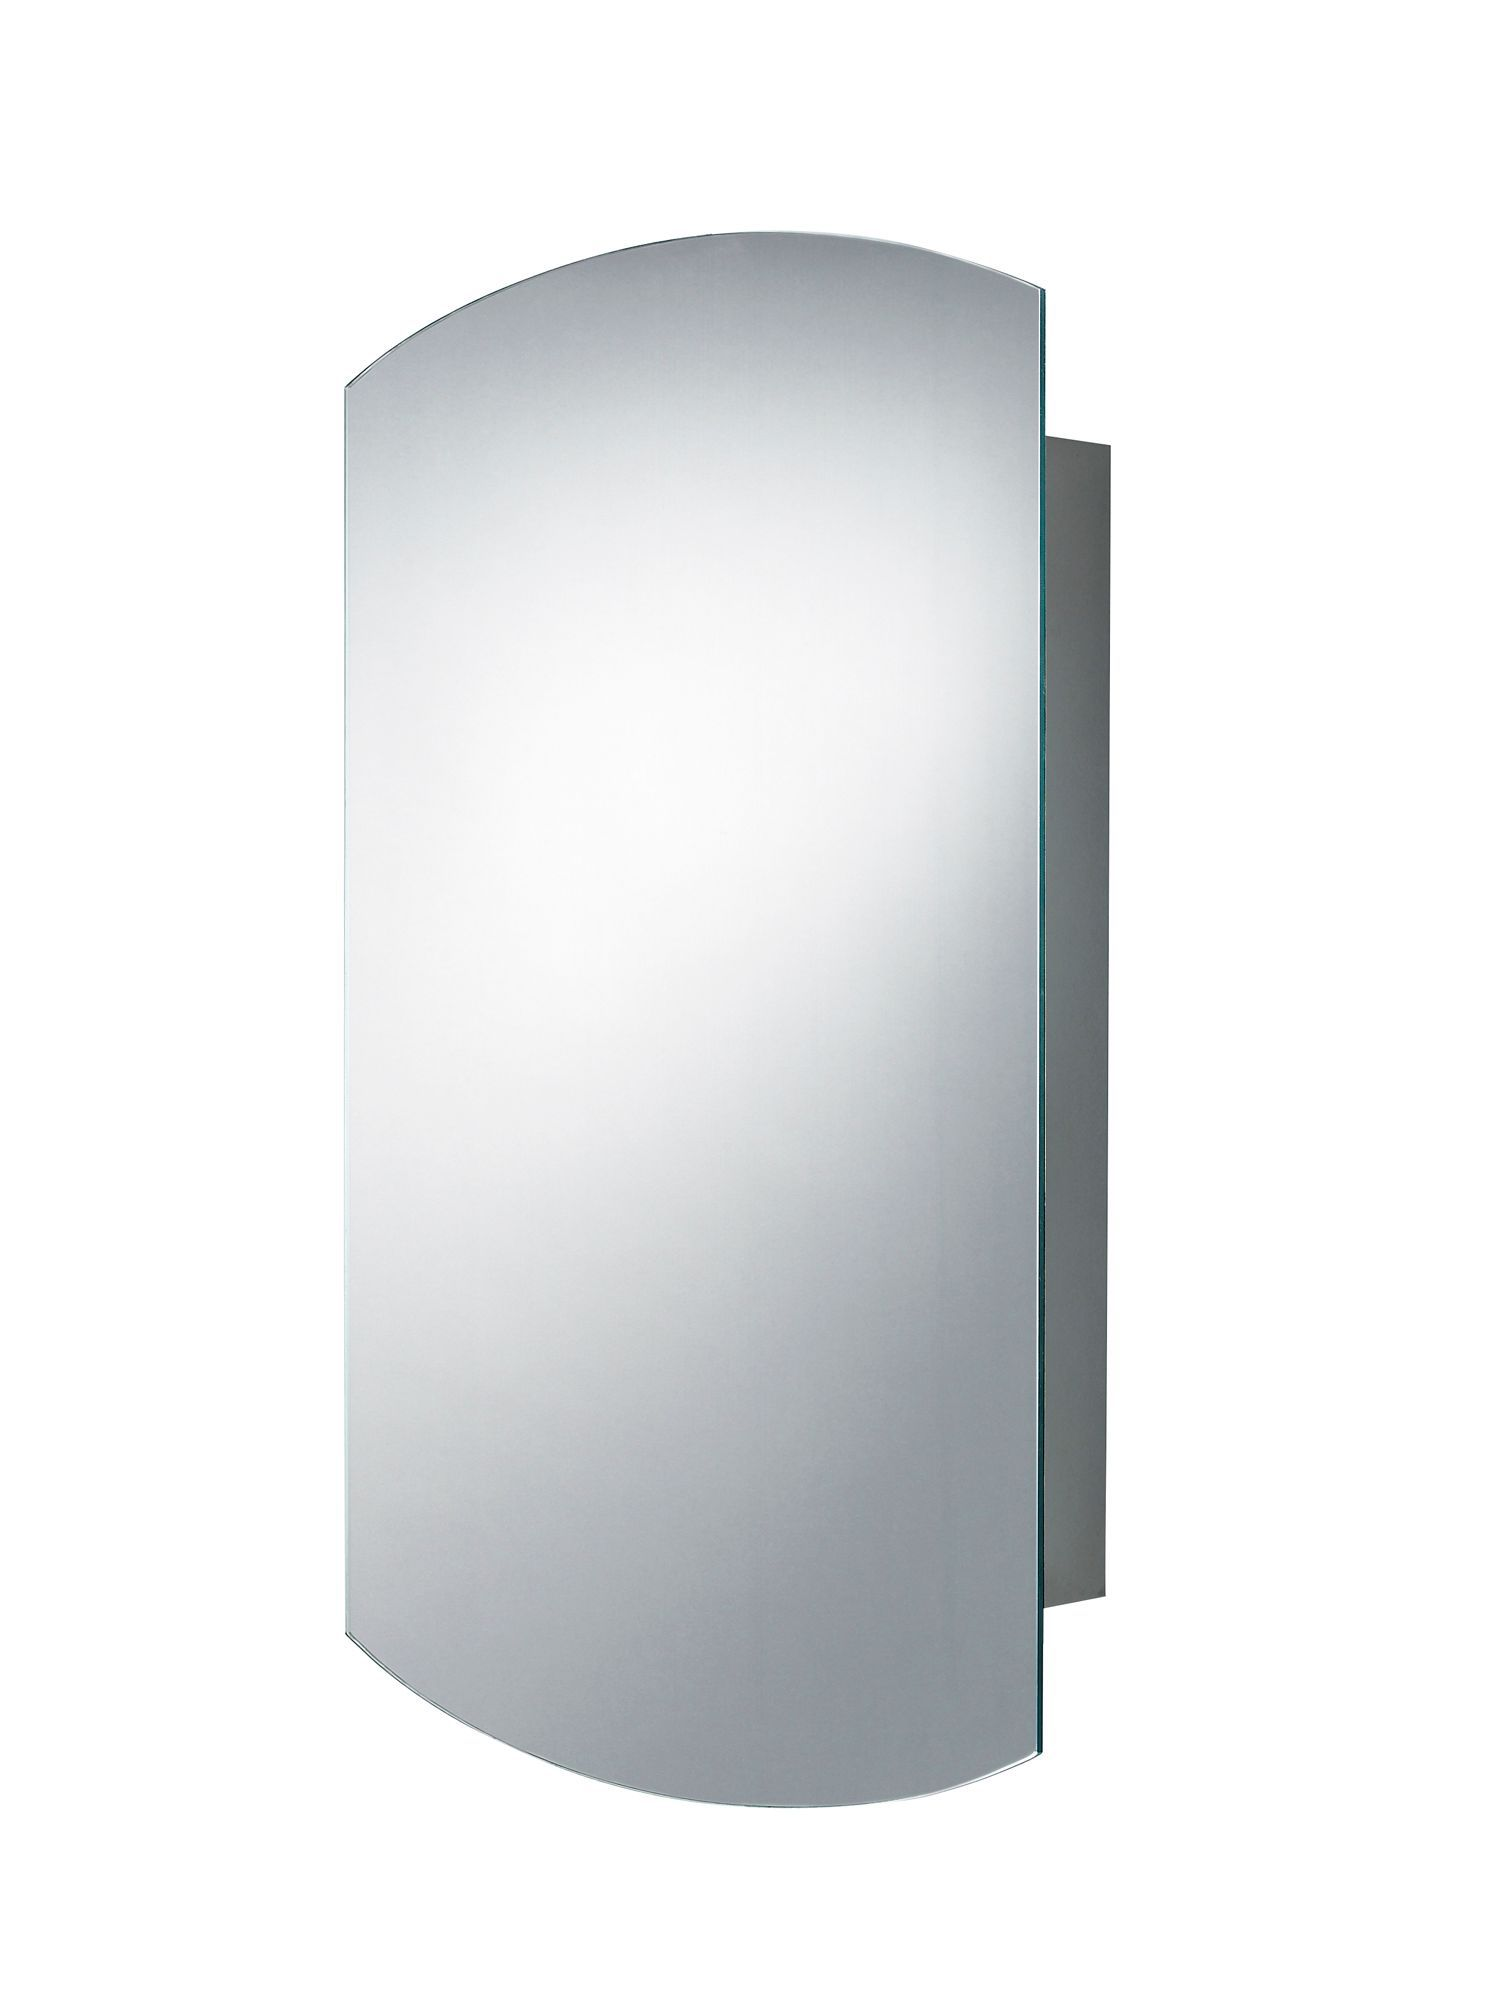 bq fonteno single door silver mirror cabinet